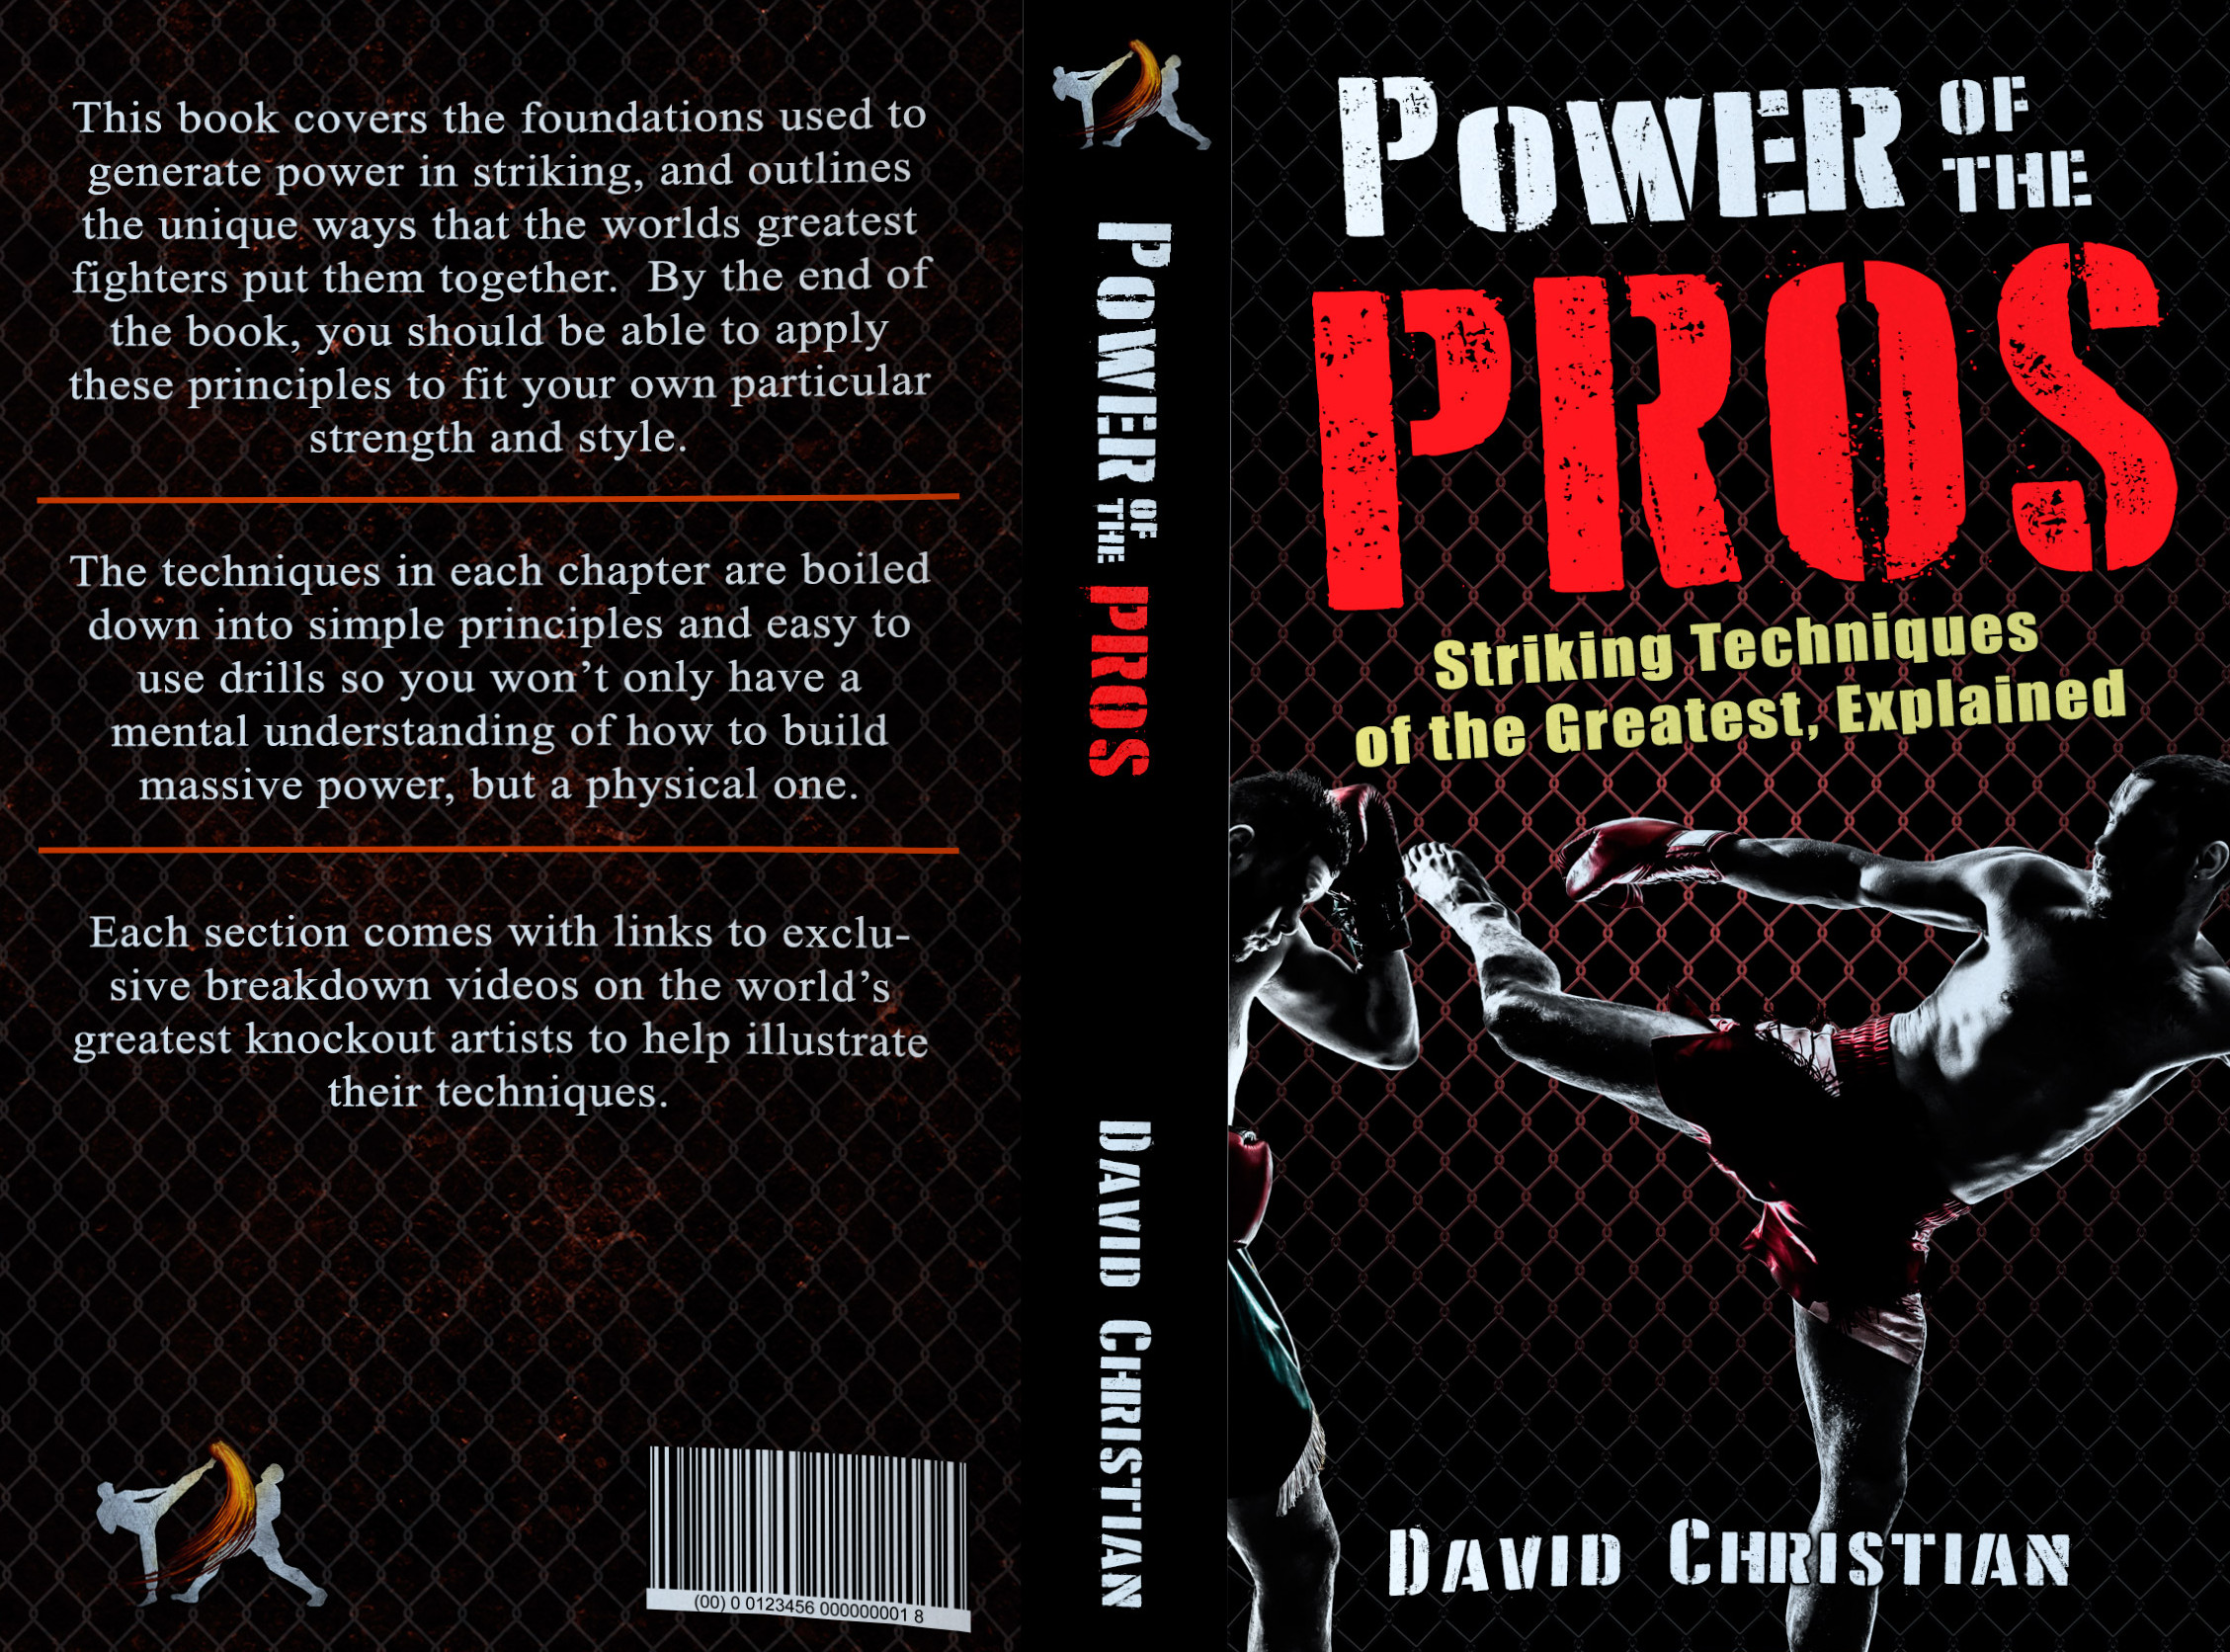 PowerOfThePros_Book_Mockup